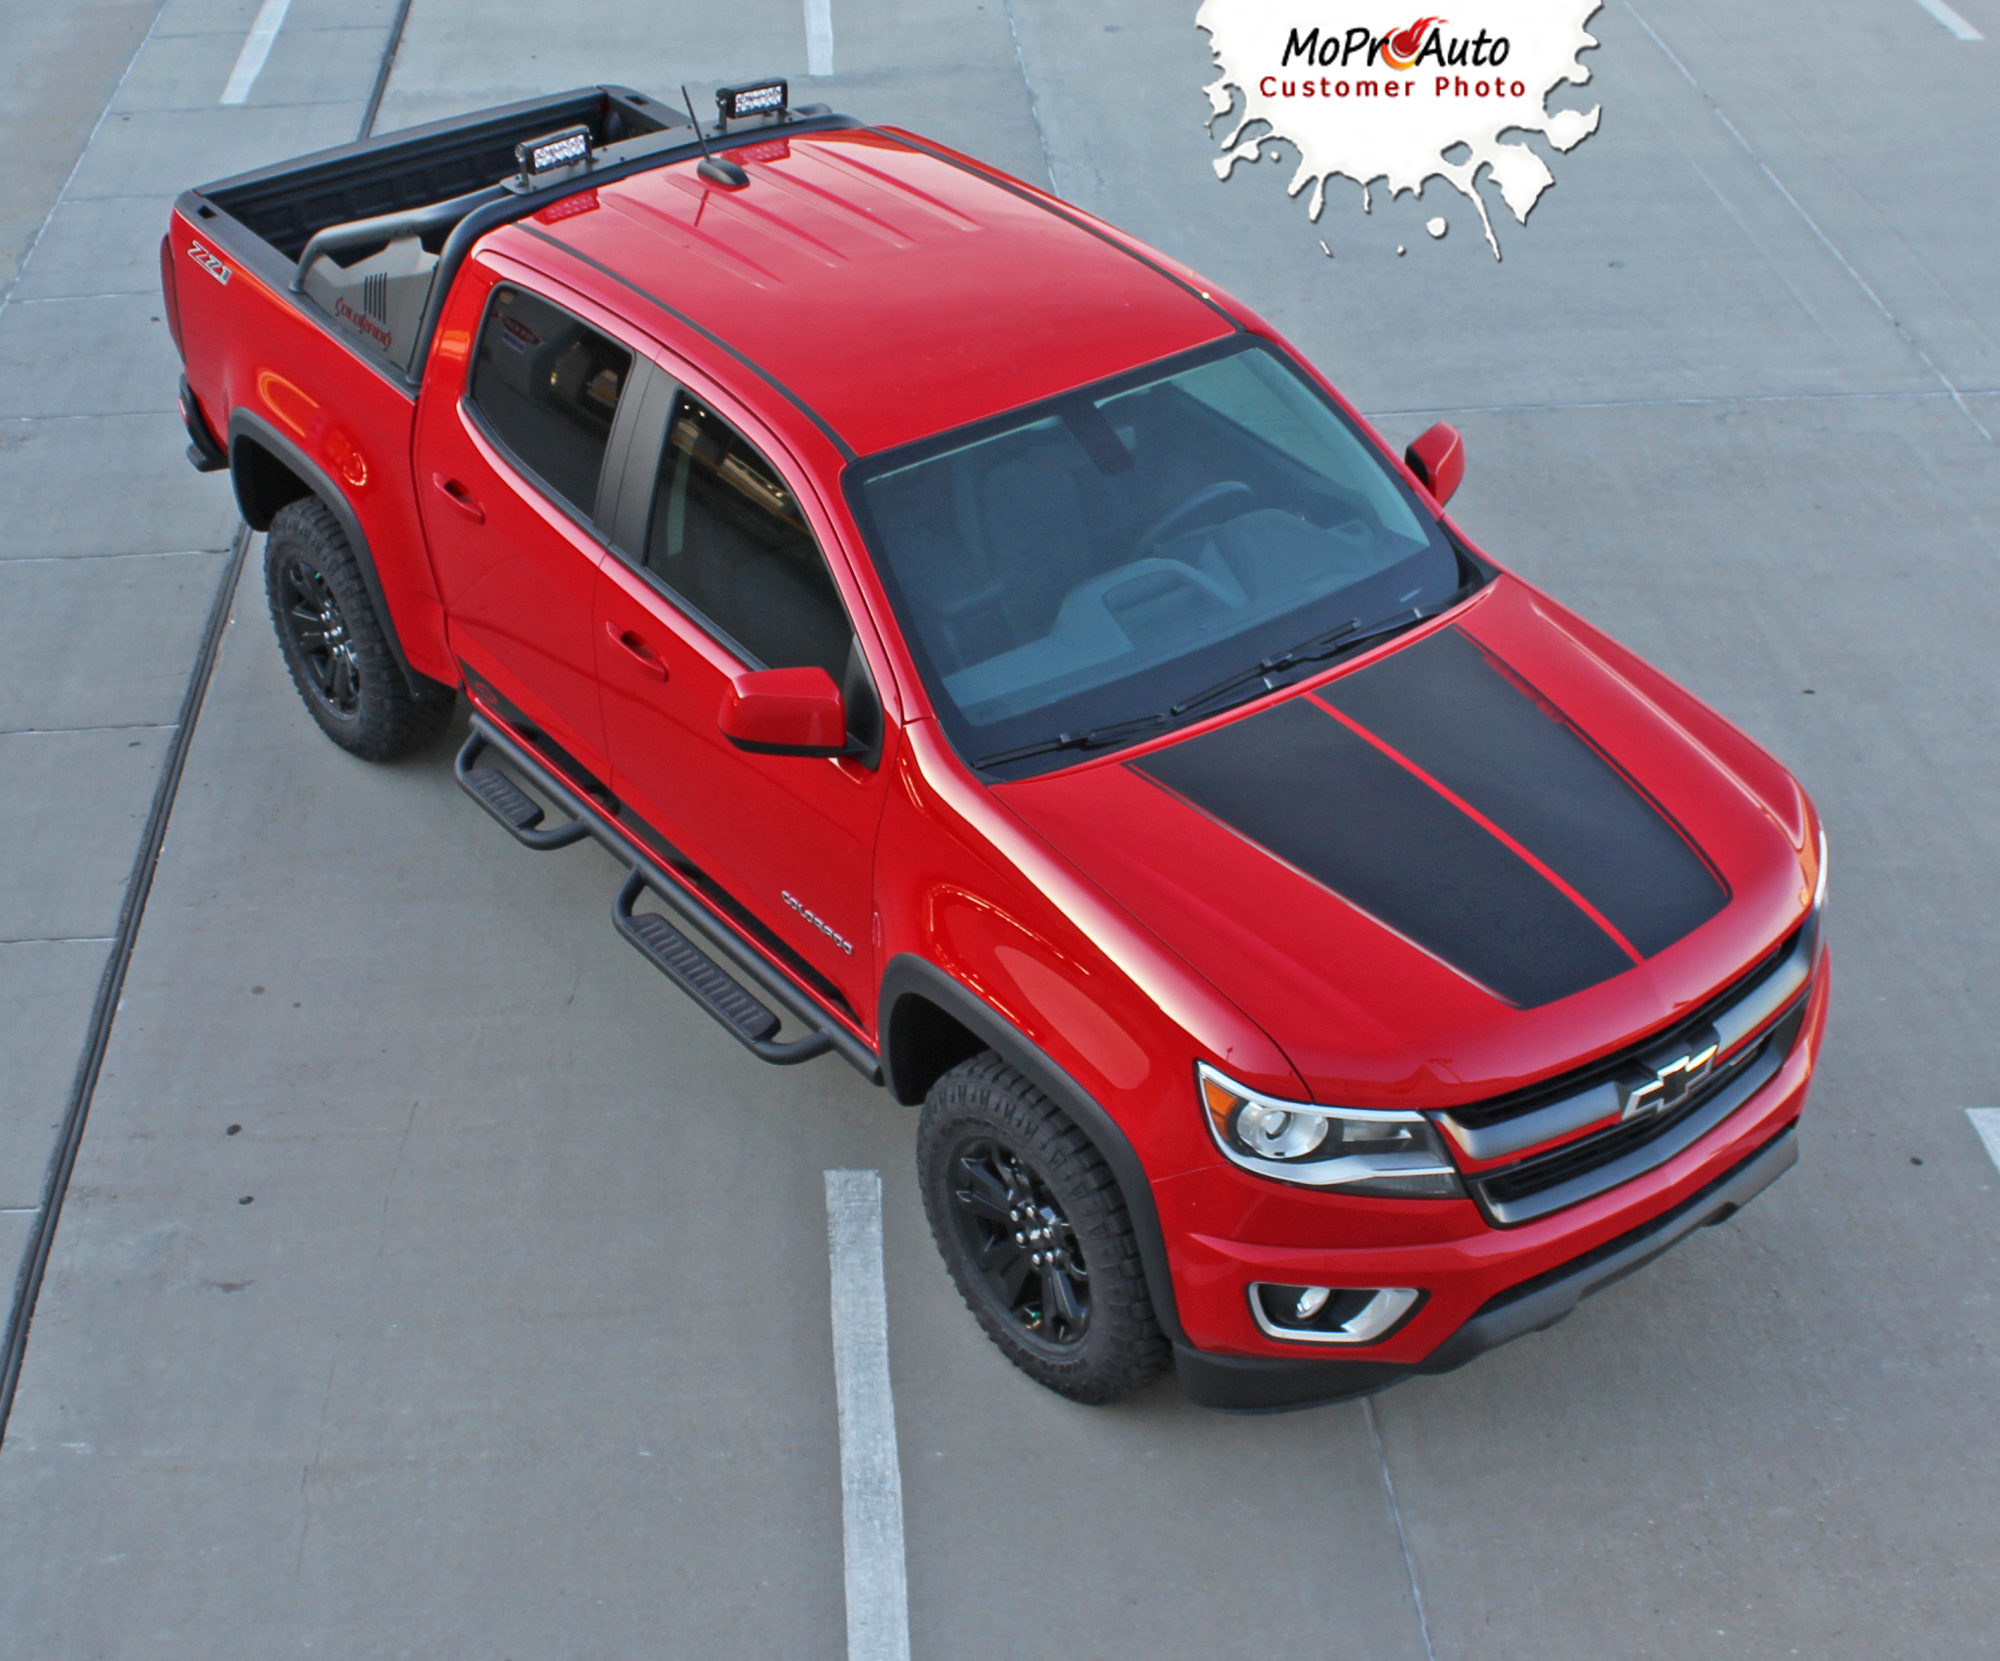 SUMMIT - Chevy Colorado Vinyl Graphics, Stripes and Decals Package by MoProAuto Pro Design Series